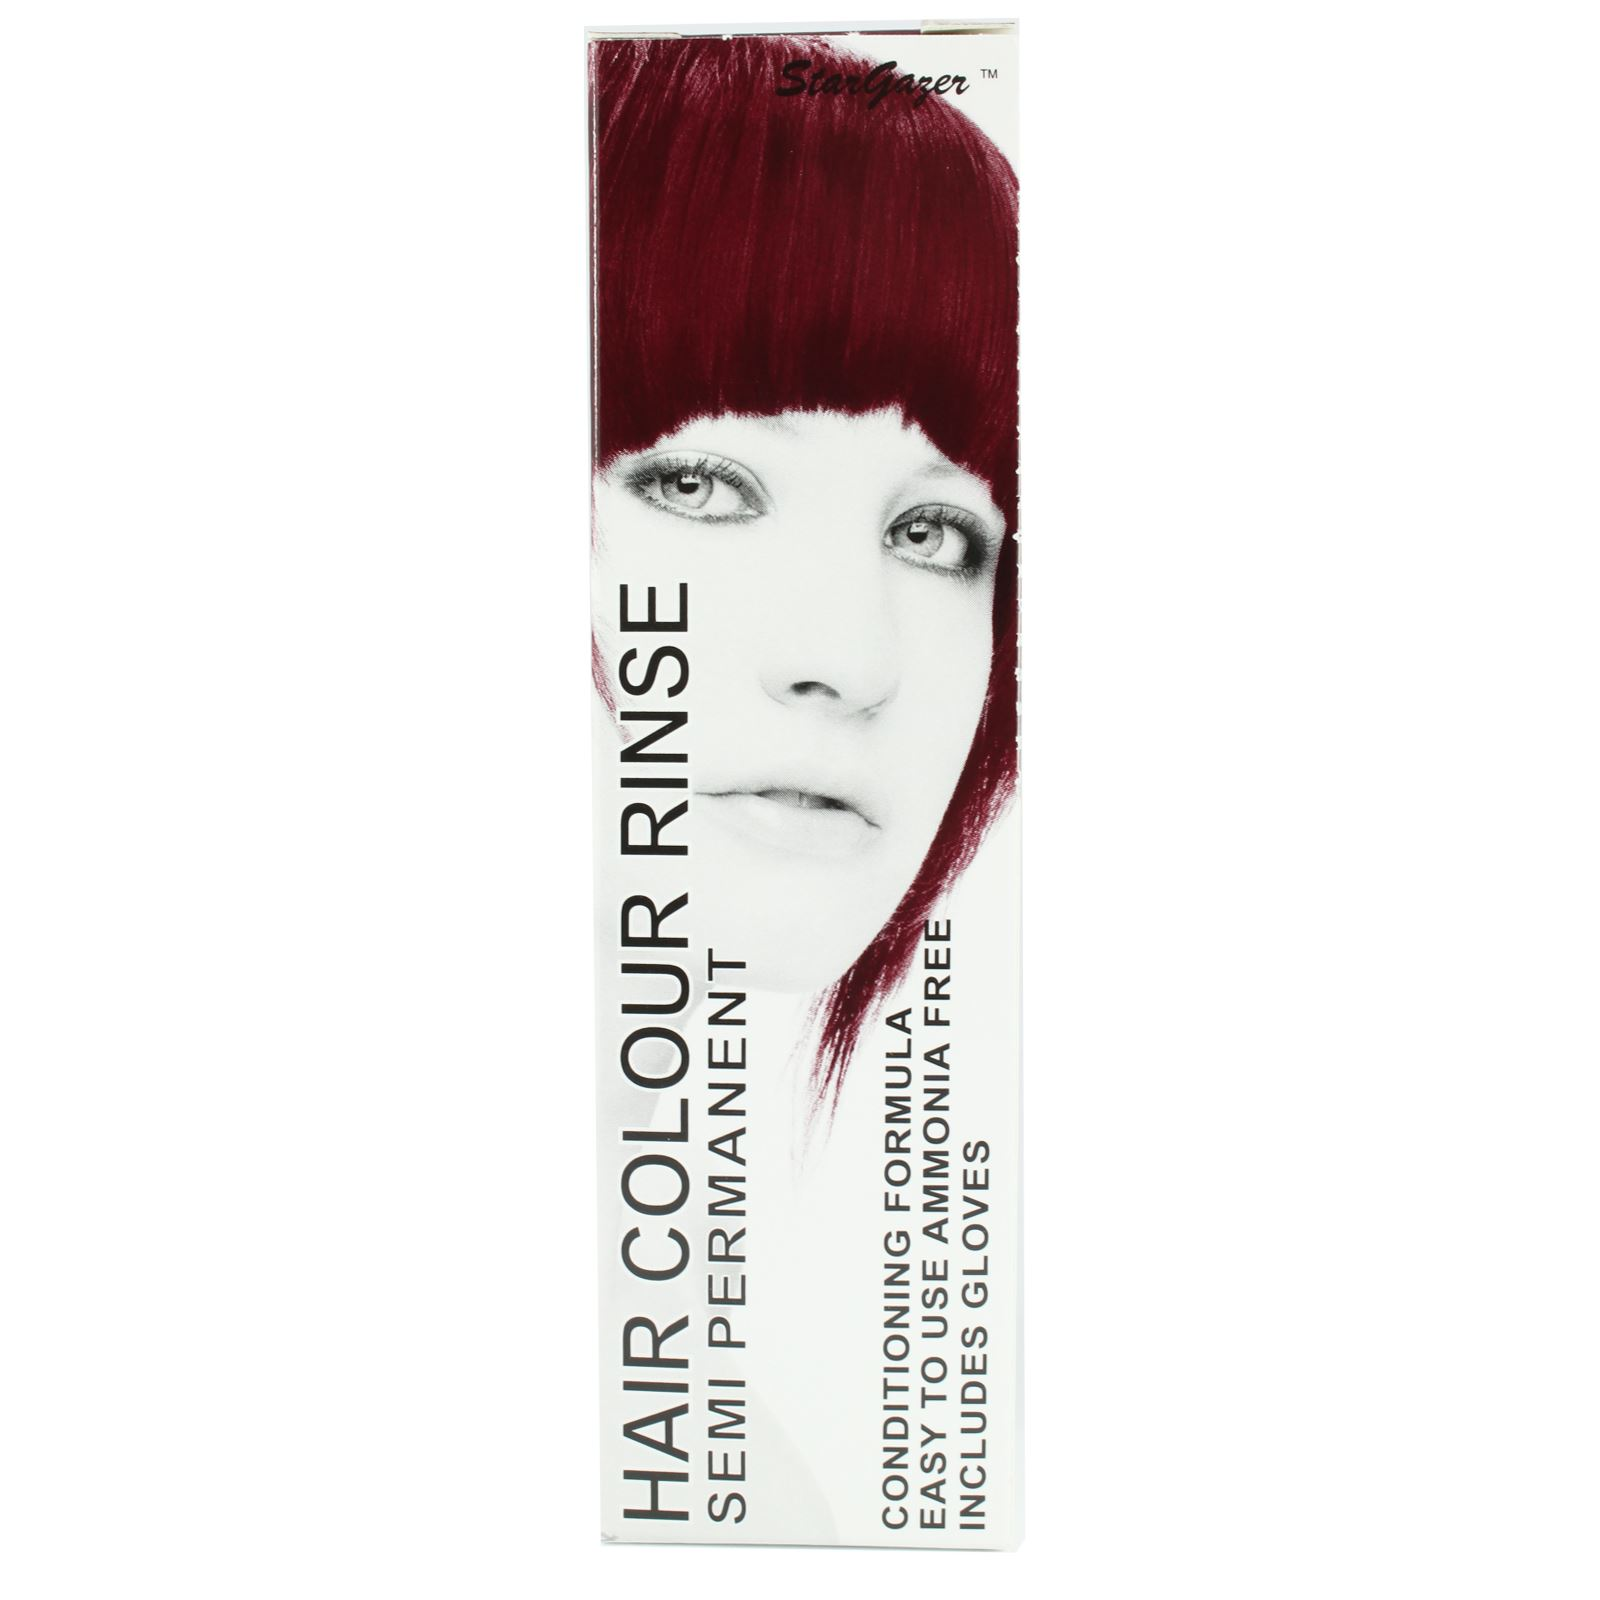 Stargazer-Semi-Permanent-Hair-Dye-Cream-Colour-Rinse-Tint-Toner-1-2-or-4-Pack